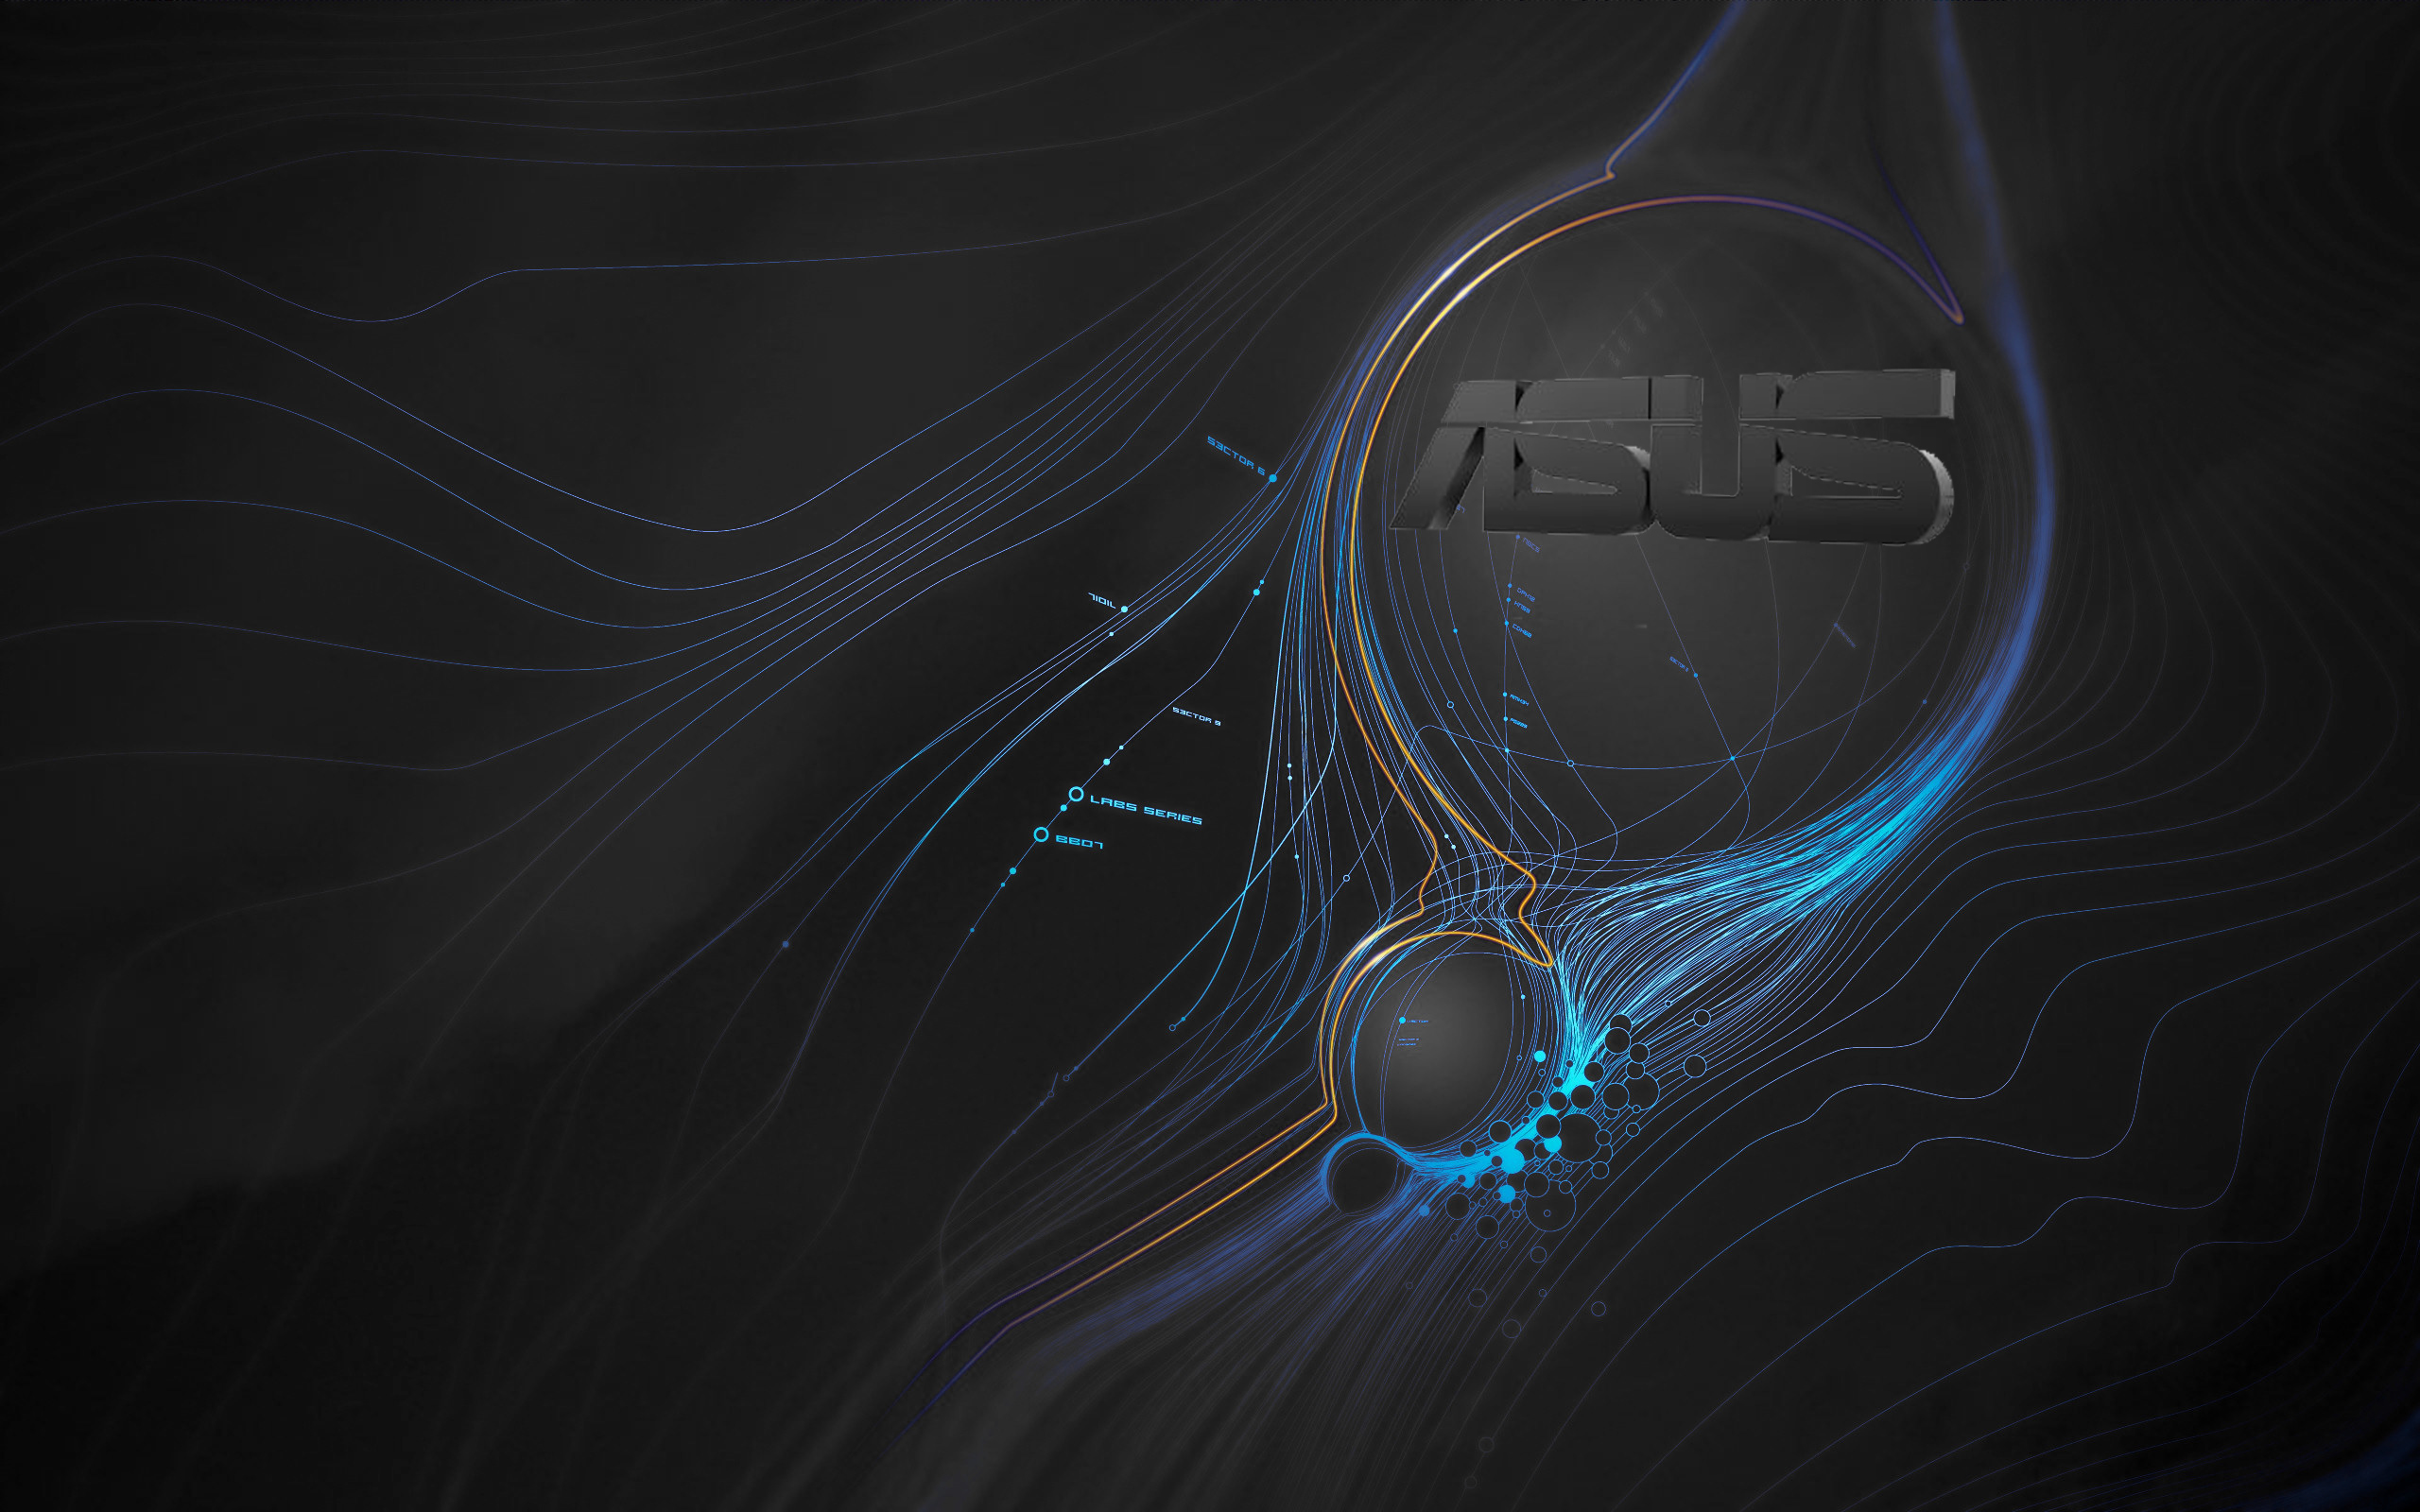 Tags Asus Rog Wallpaper 1080p Hd HD Walls Find Wallpapers 2560x1600